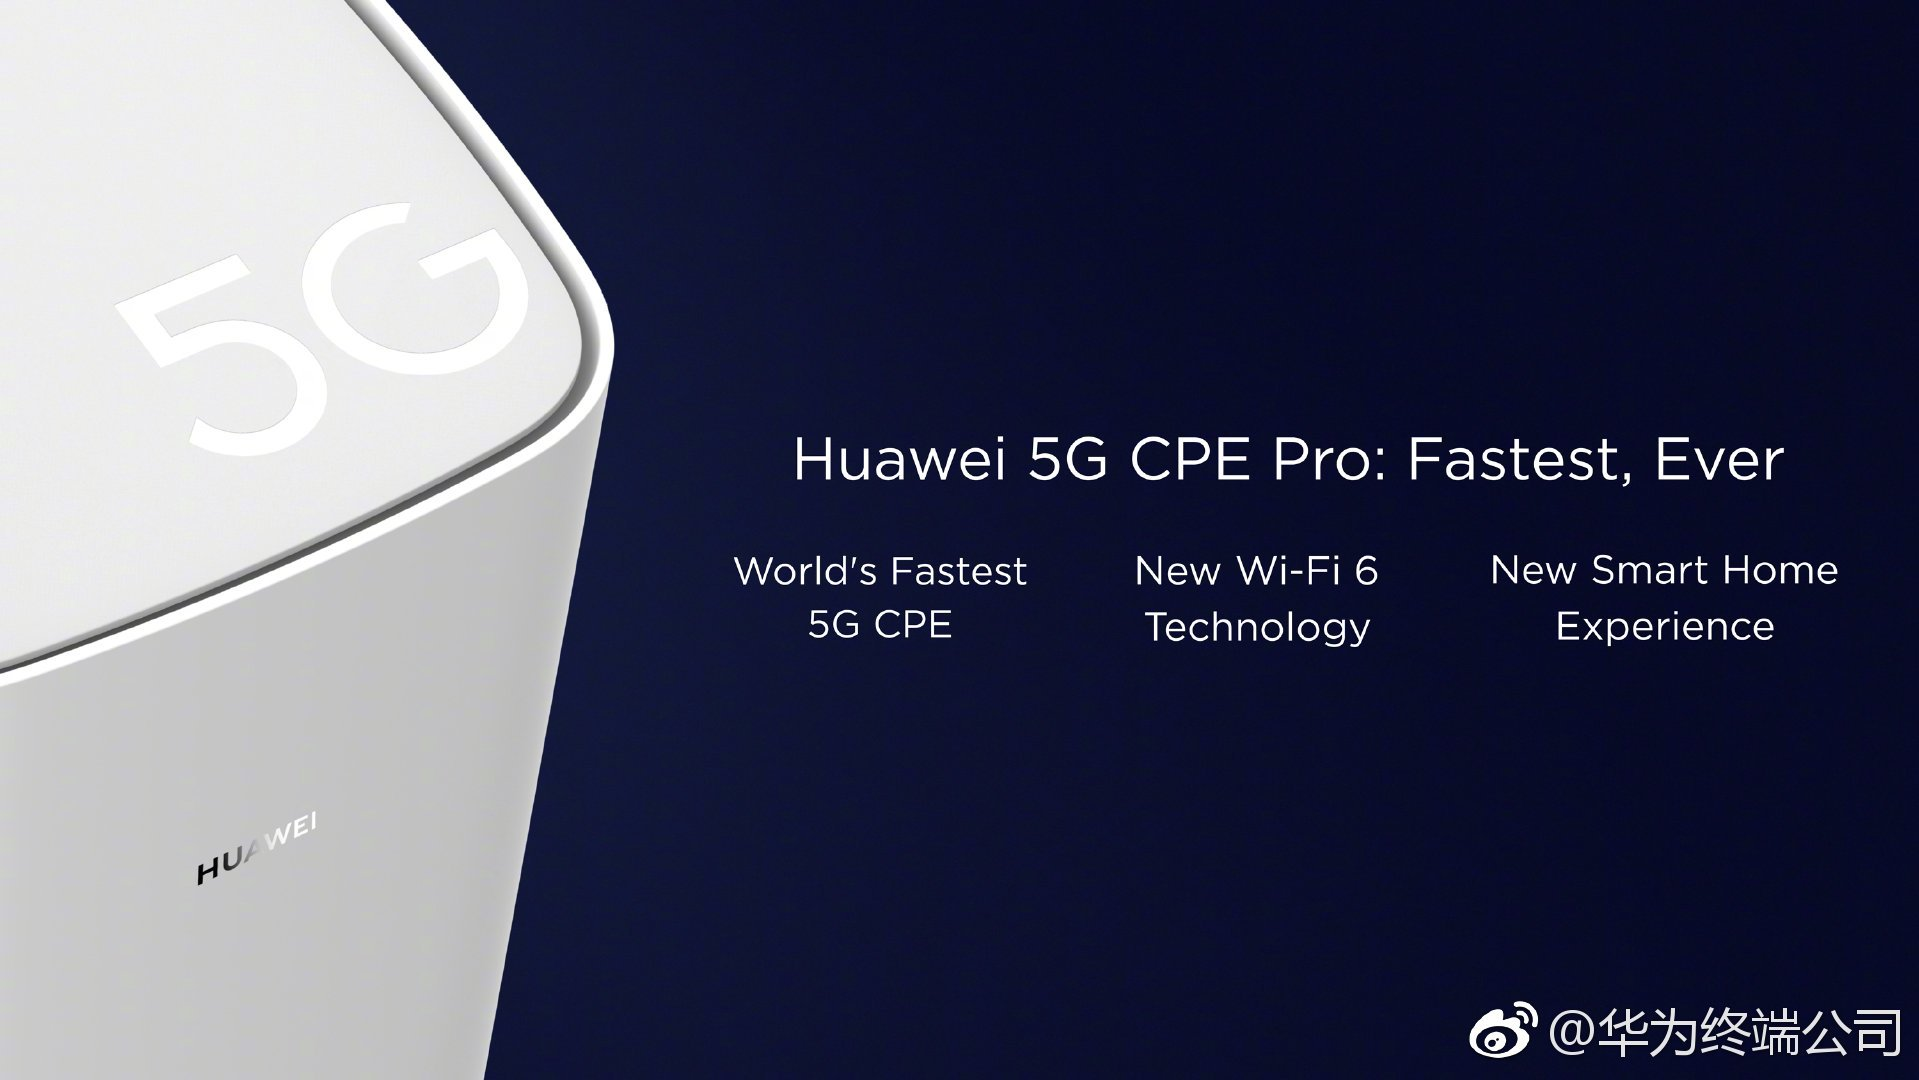 Huawei MWC 2019 Pre- Conference